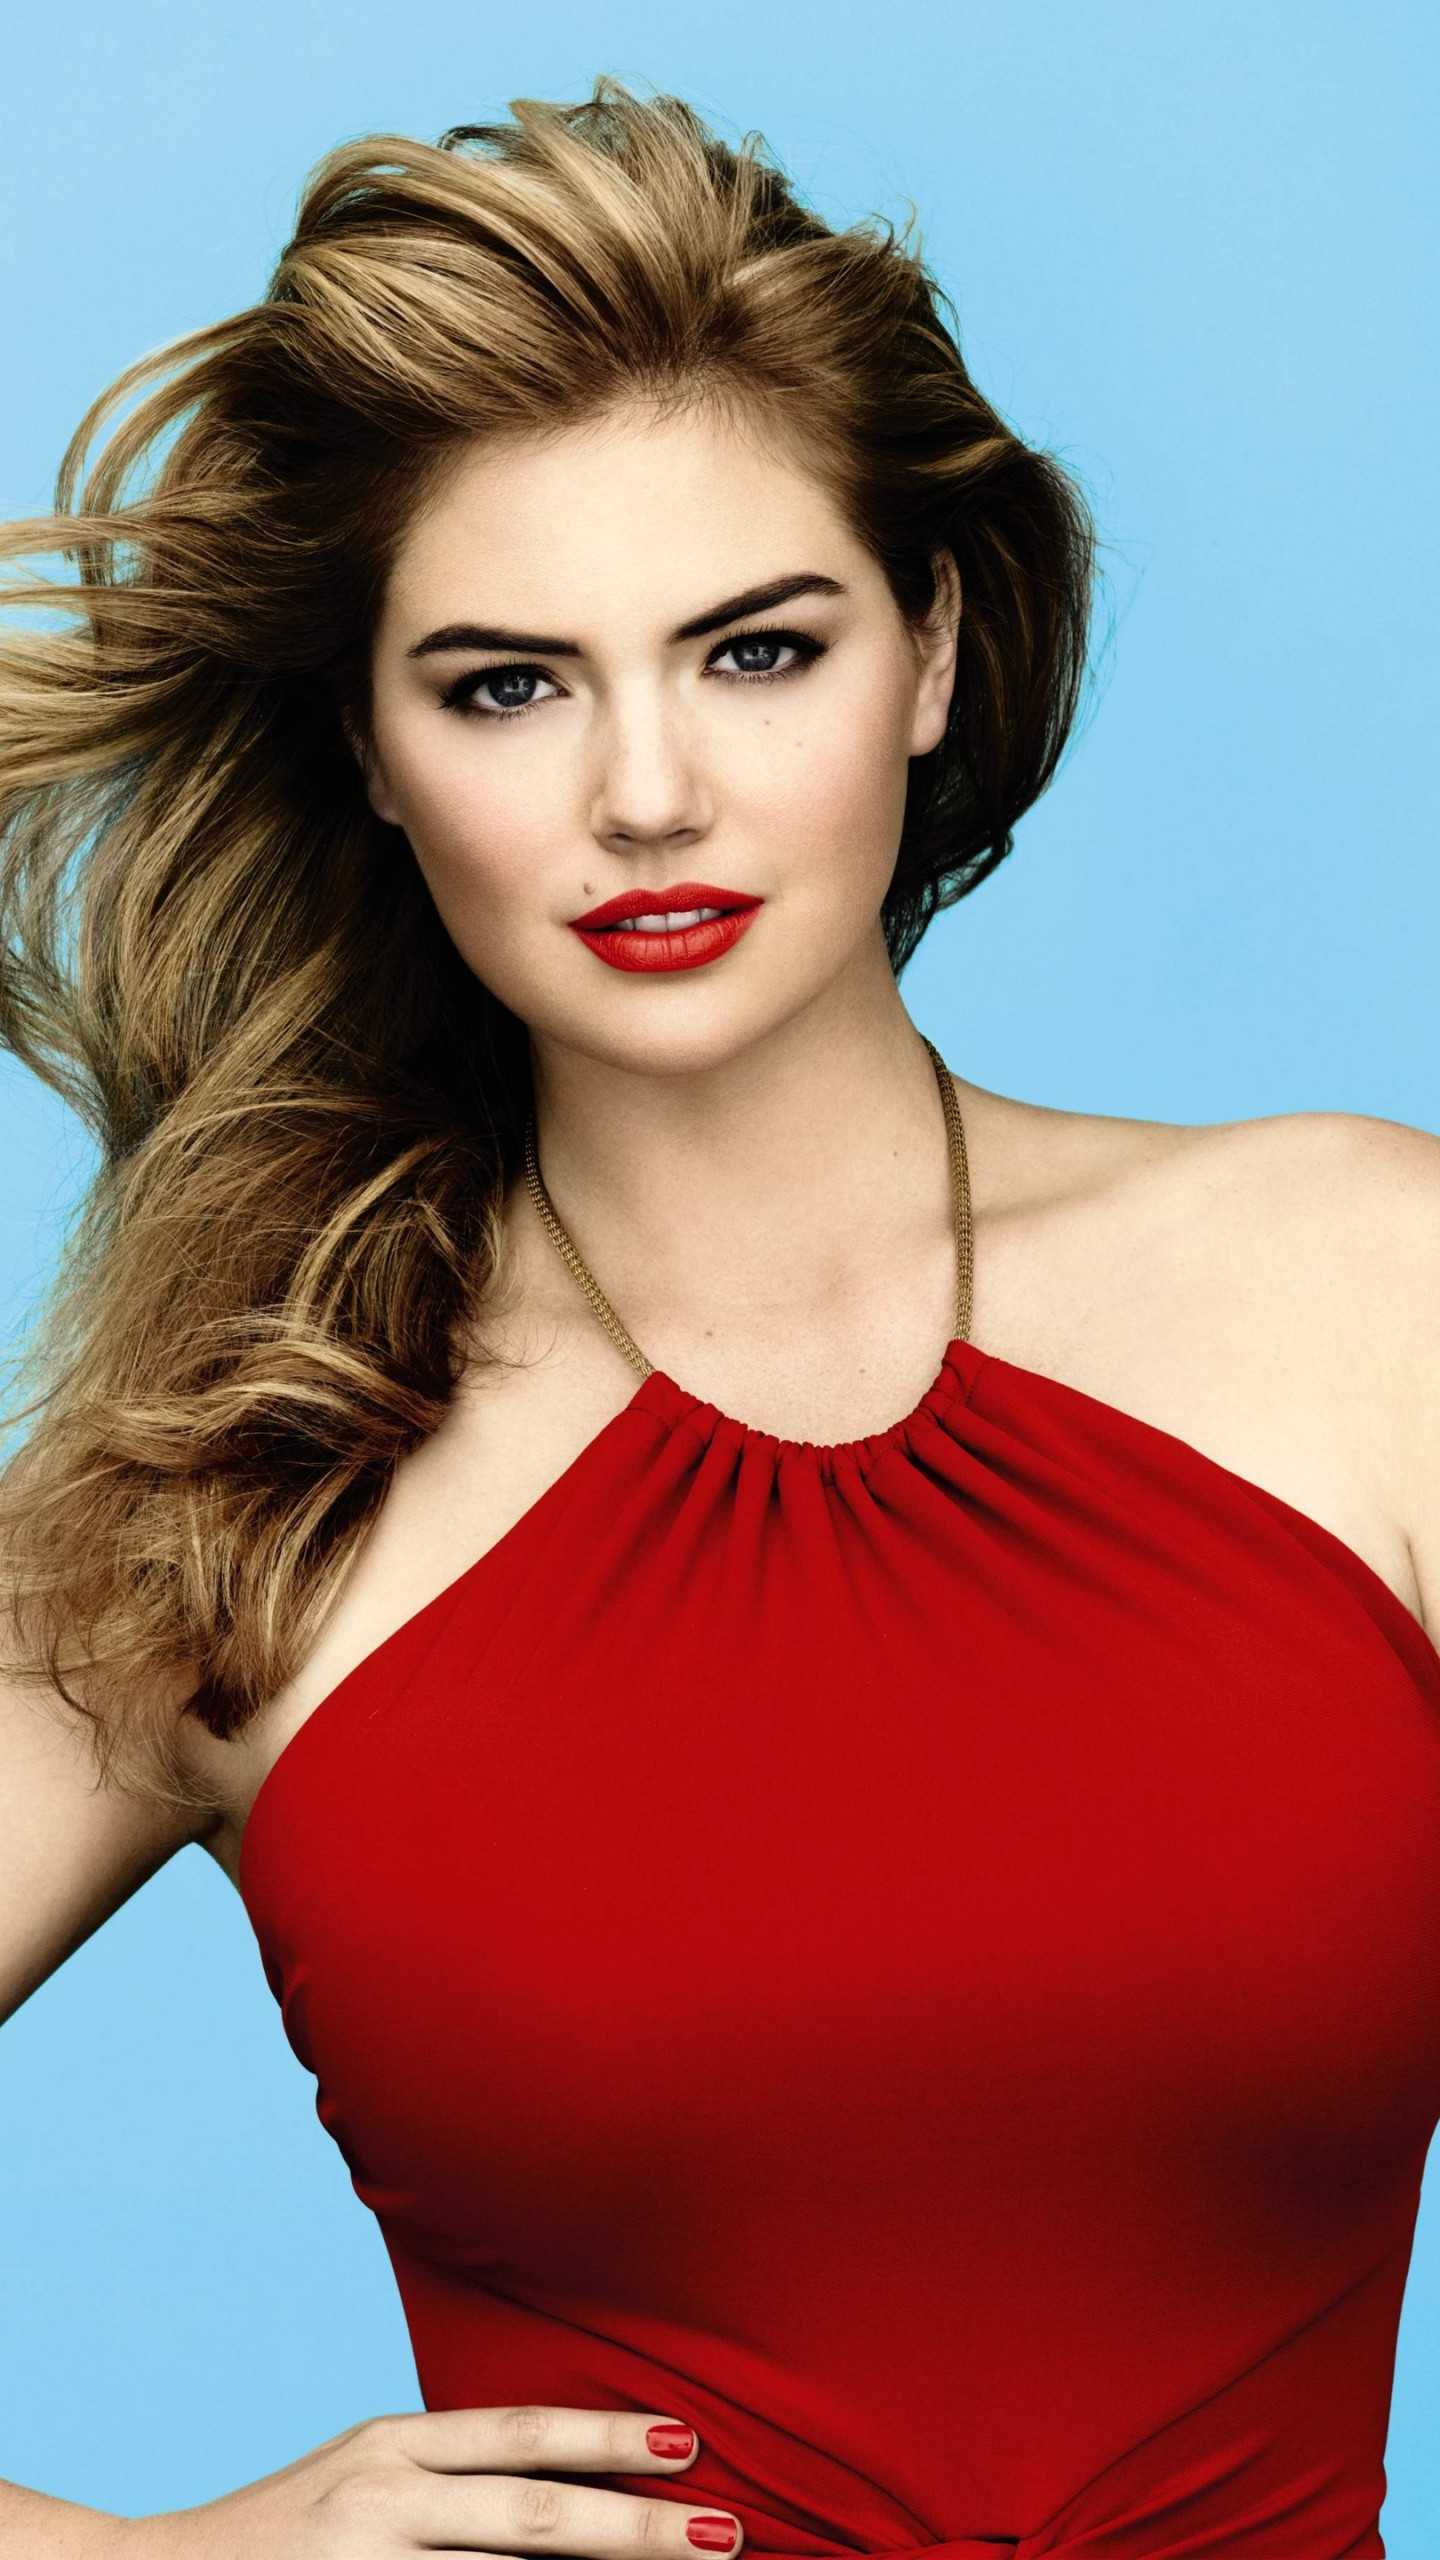 Most Popular Teen Girl Hairstyles: Wallpaper Kate Upton, Most Popular Celebs, Actress, Model